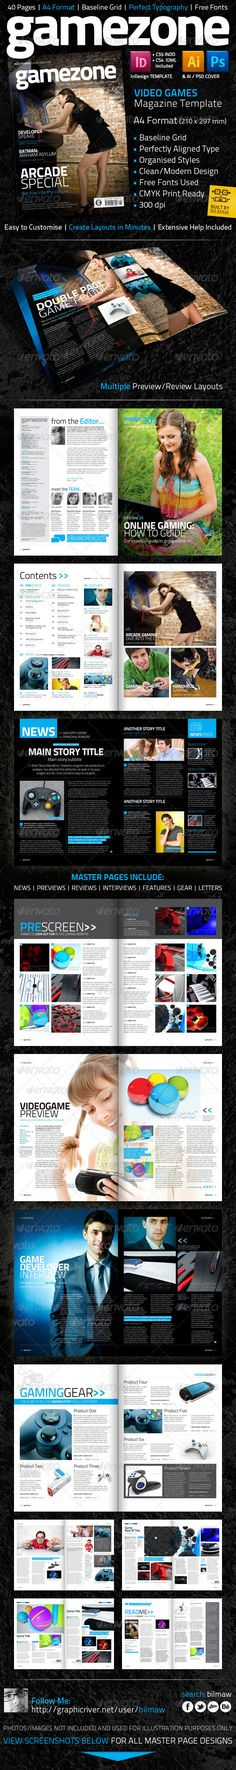 Video Game Magazine Template - Magazines Print Templates